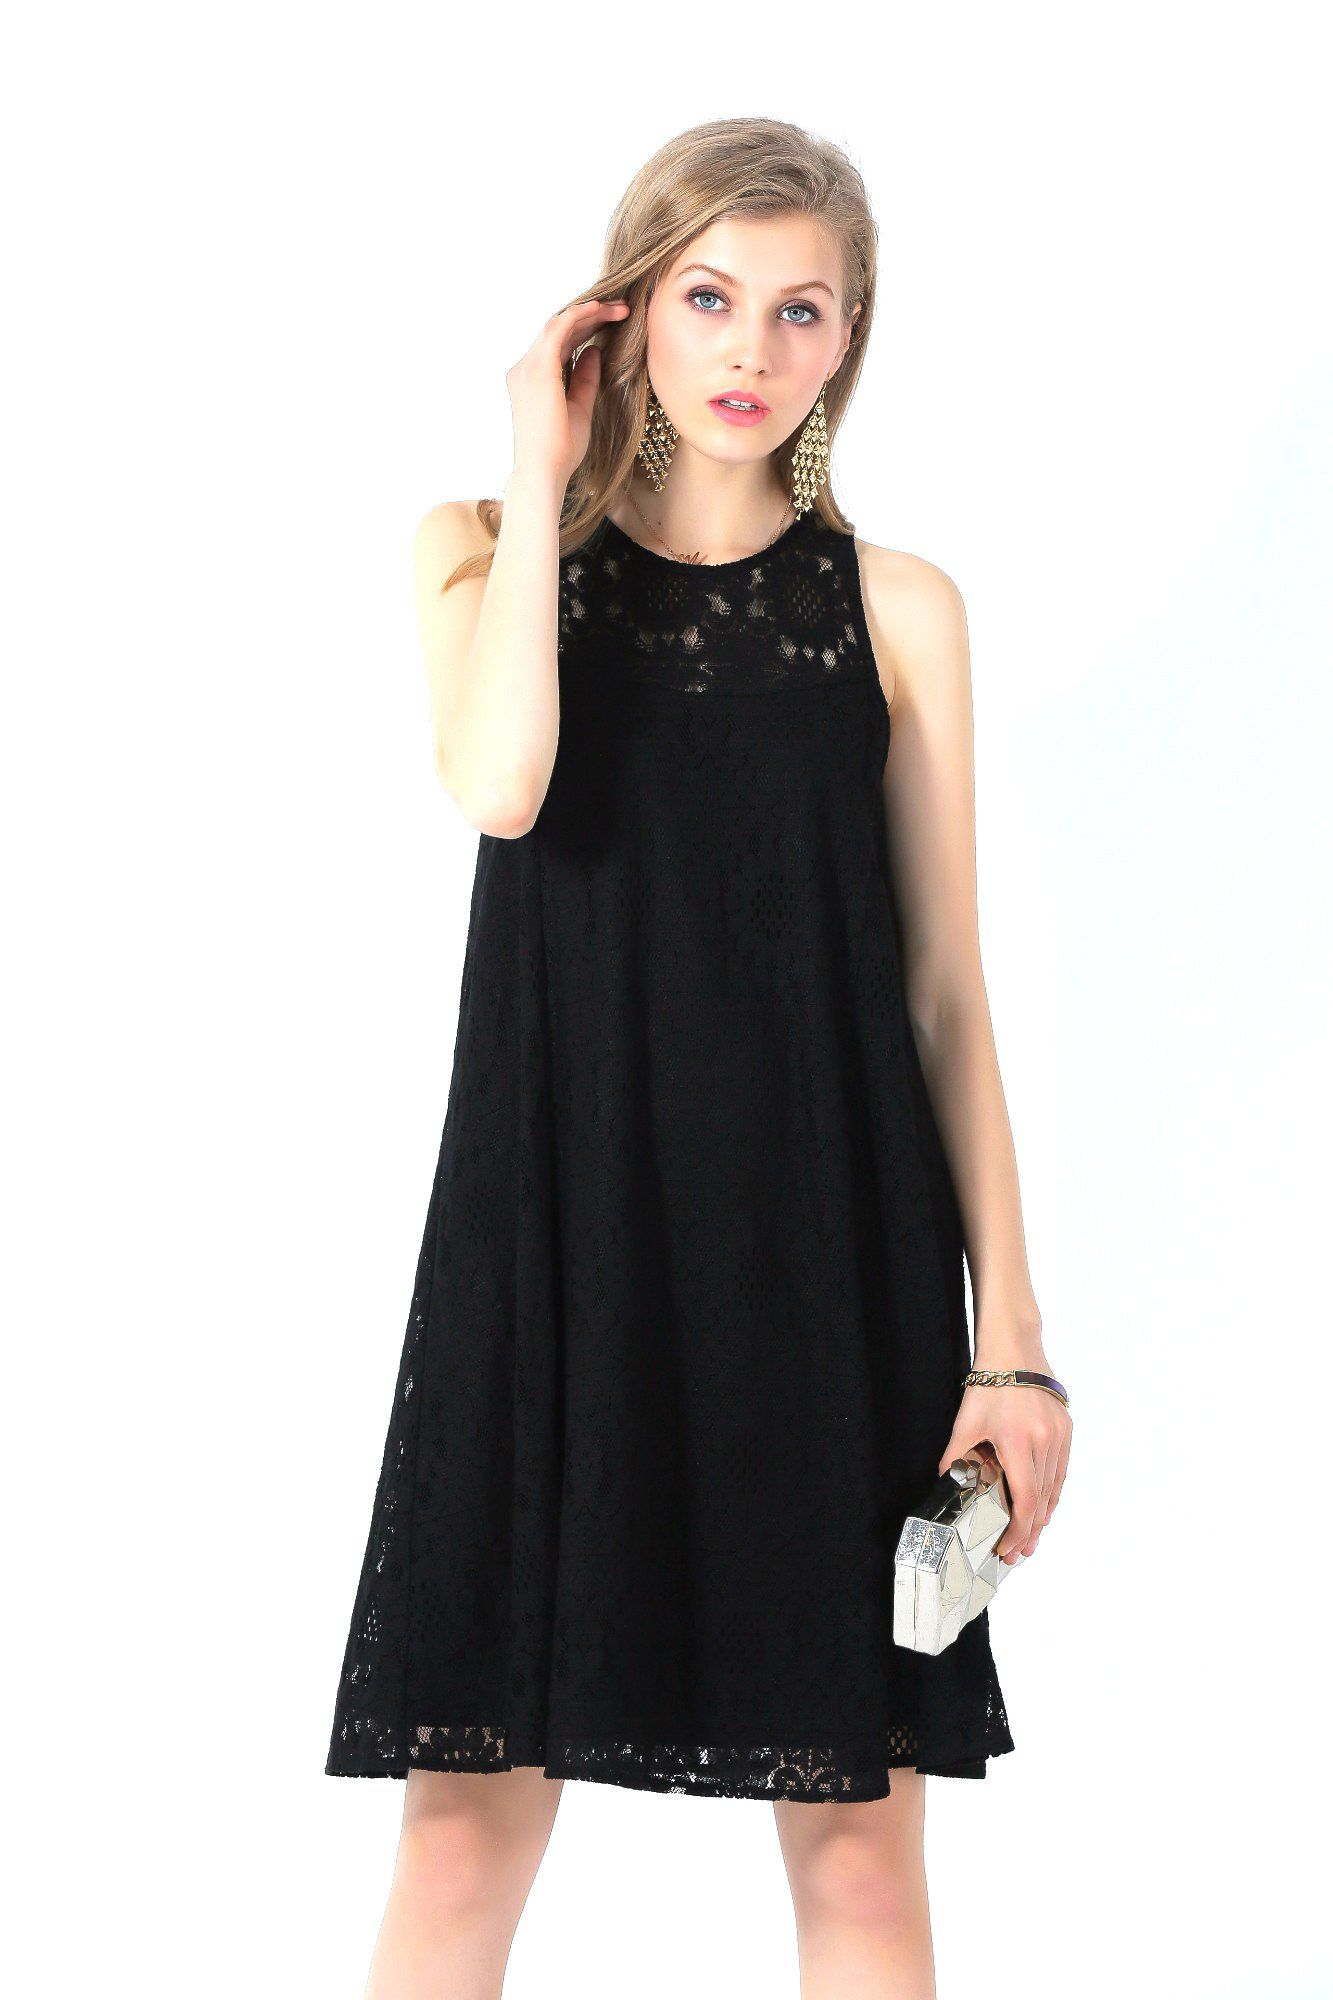 e34efcc06cb3f7 UP Ultrapink Missy Black Classy Allover Lace Sleeveless Trapeze Dress Must  Have small ***